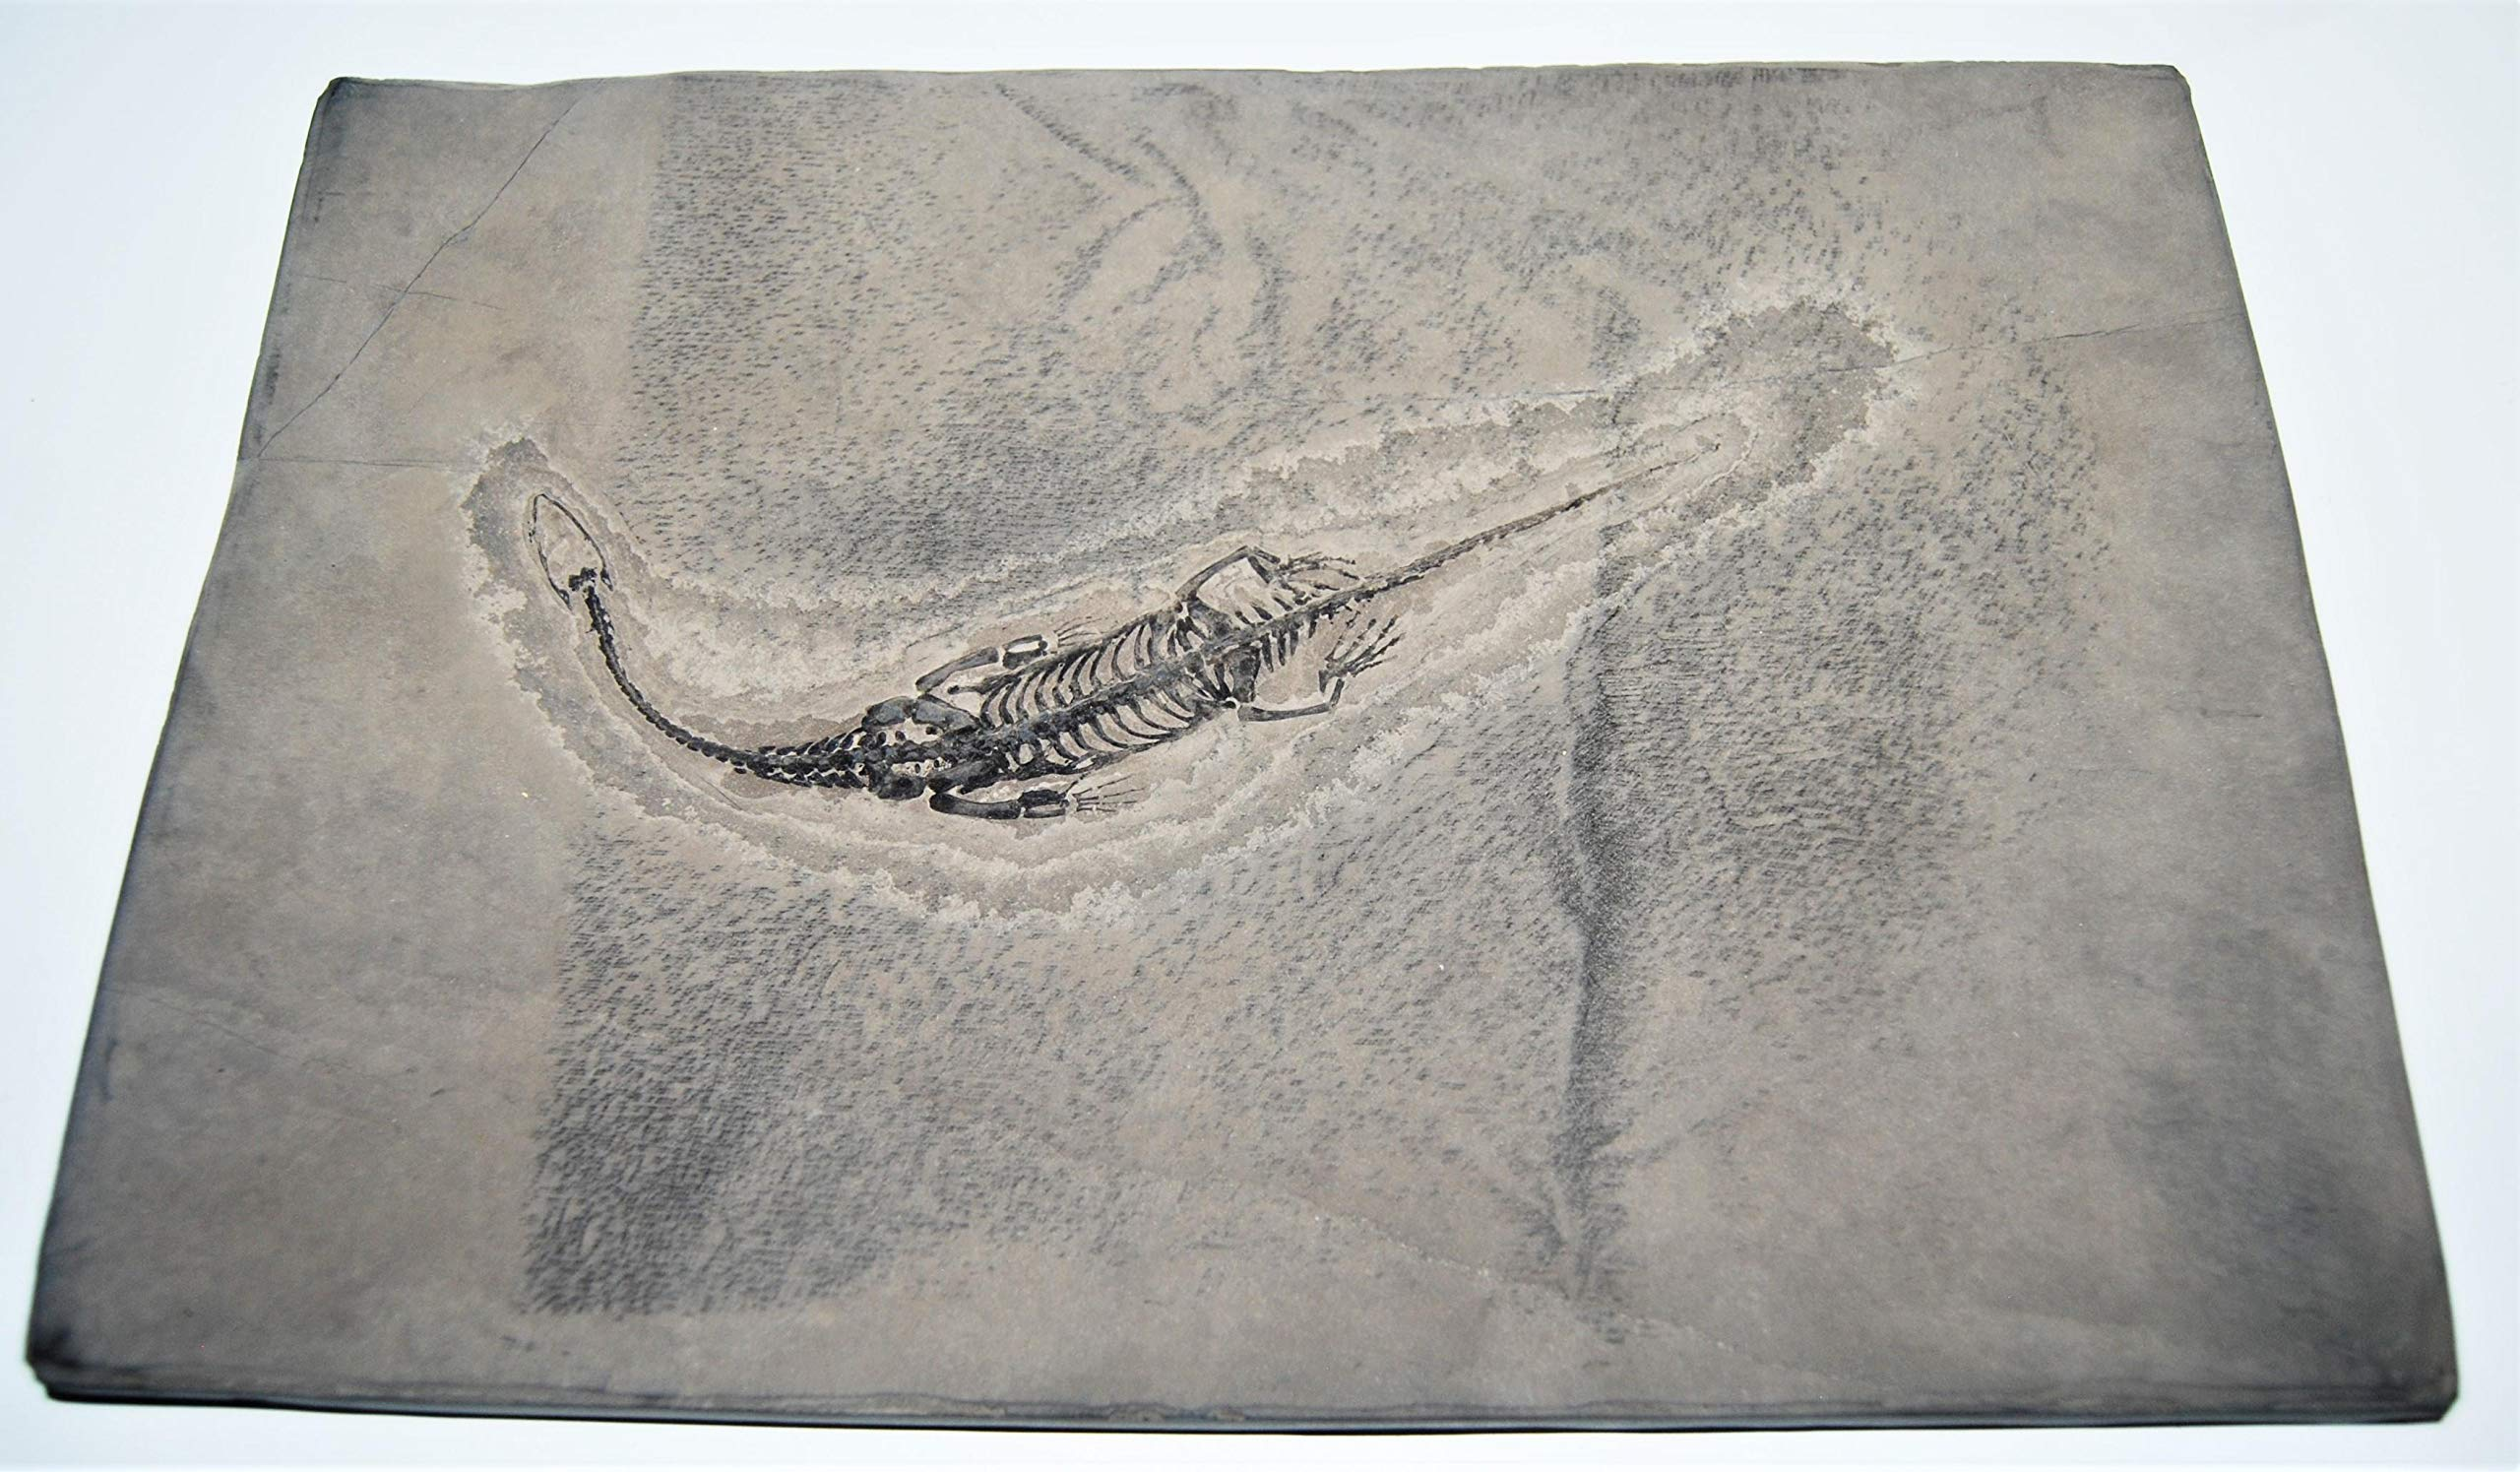 Keichousaurus Hui Dinosaur Unique and Amazing Fossil Rare #14313 83o by Fossils, Meteorites, & More (Image #4)